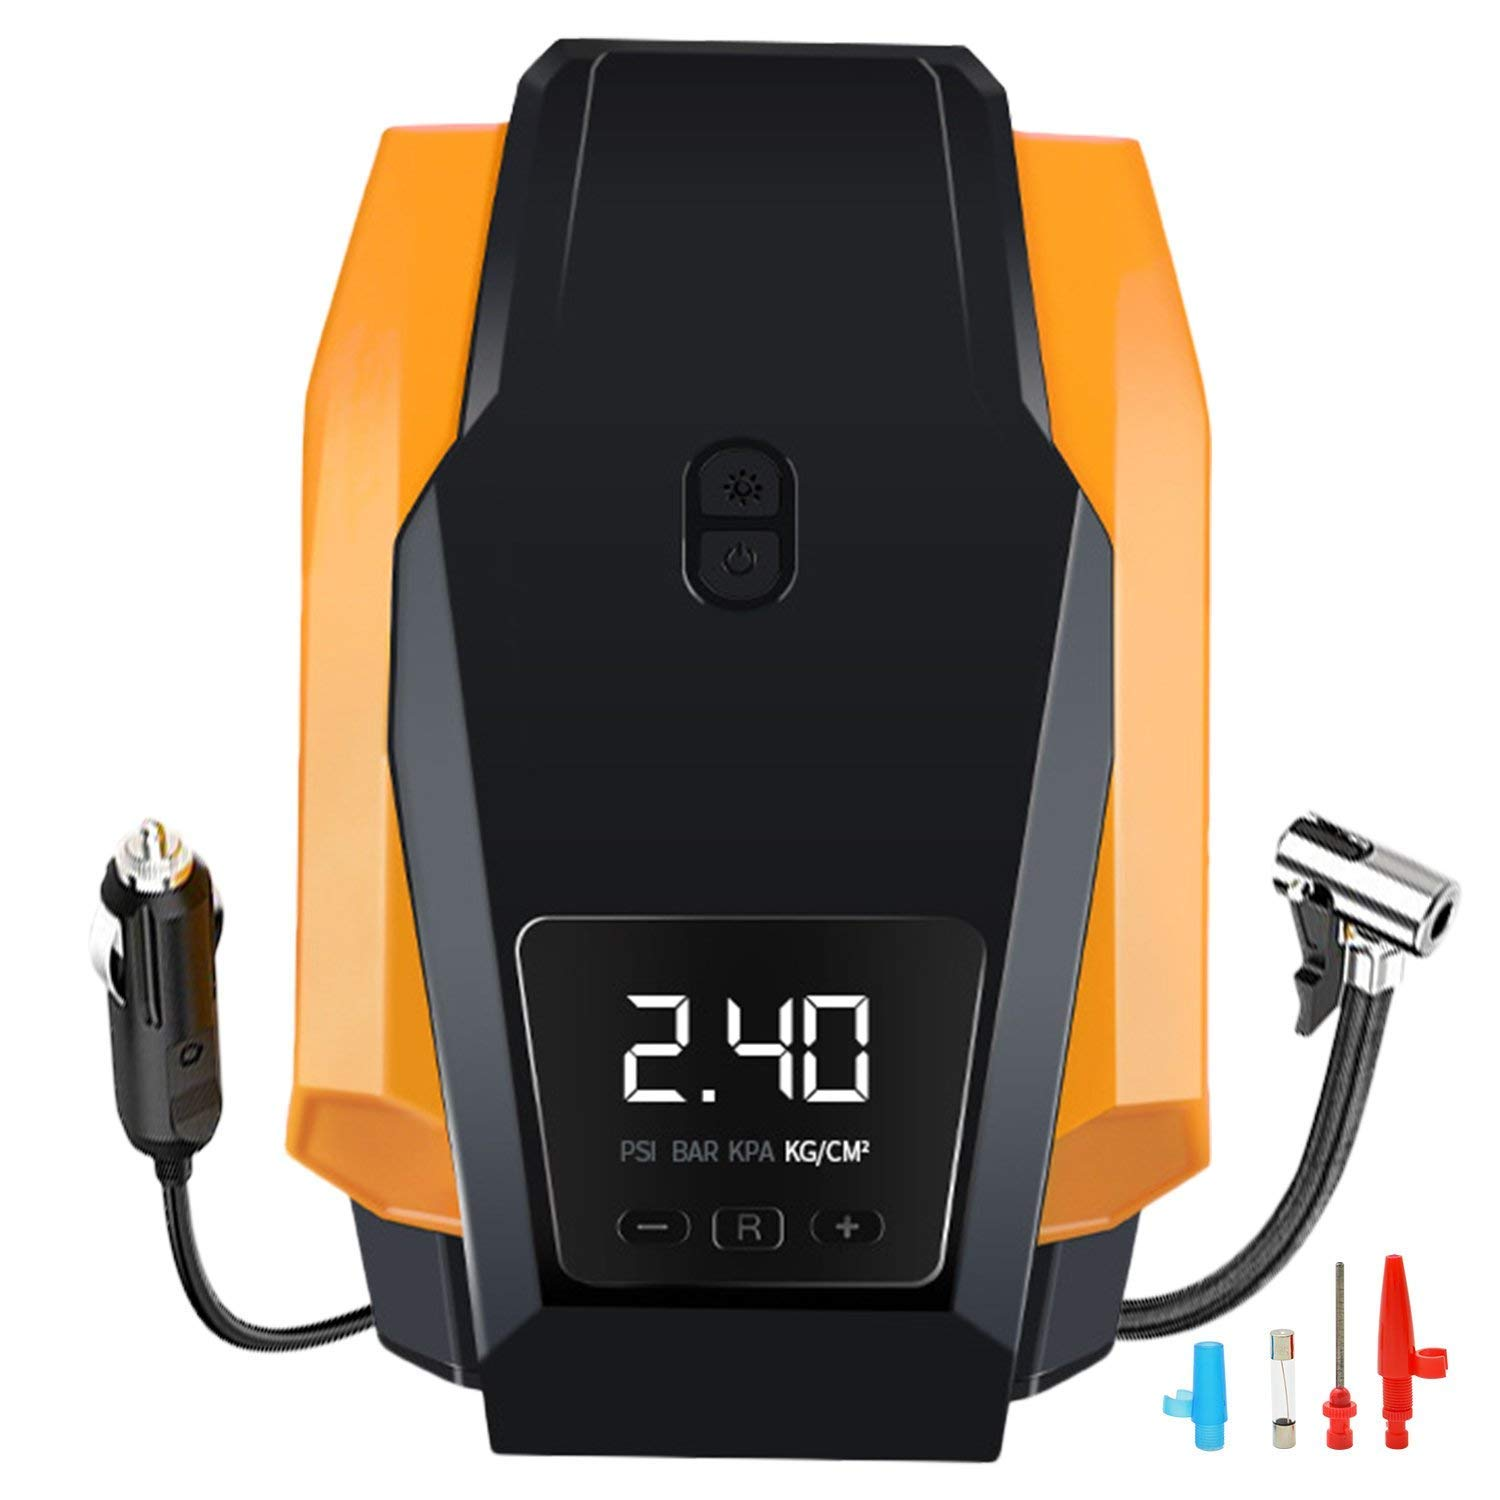 Tire Inflator, Portable Air Compressor Pump, 12V DC Auto Tire Pump with Digital Display Pressure Gauge up to 150PSI for Car, Bicycle and Other Inflatables (A-02) YFANG 4350287811